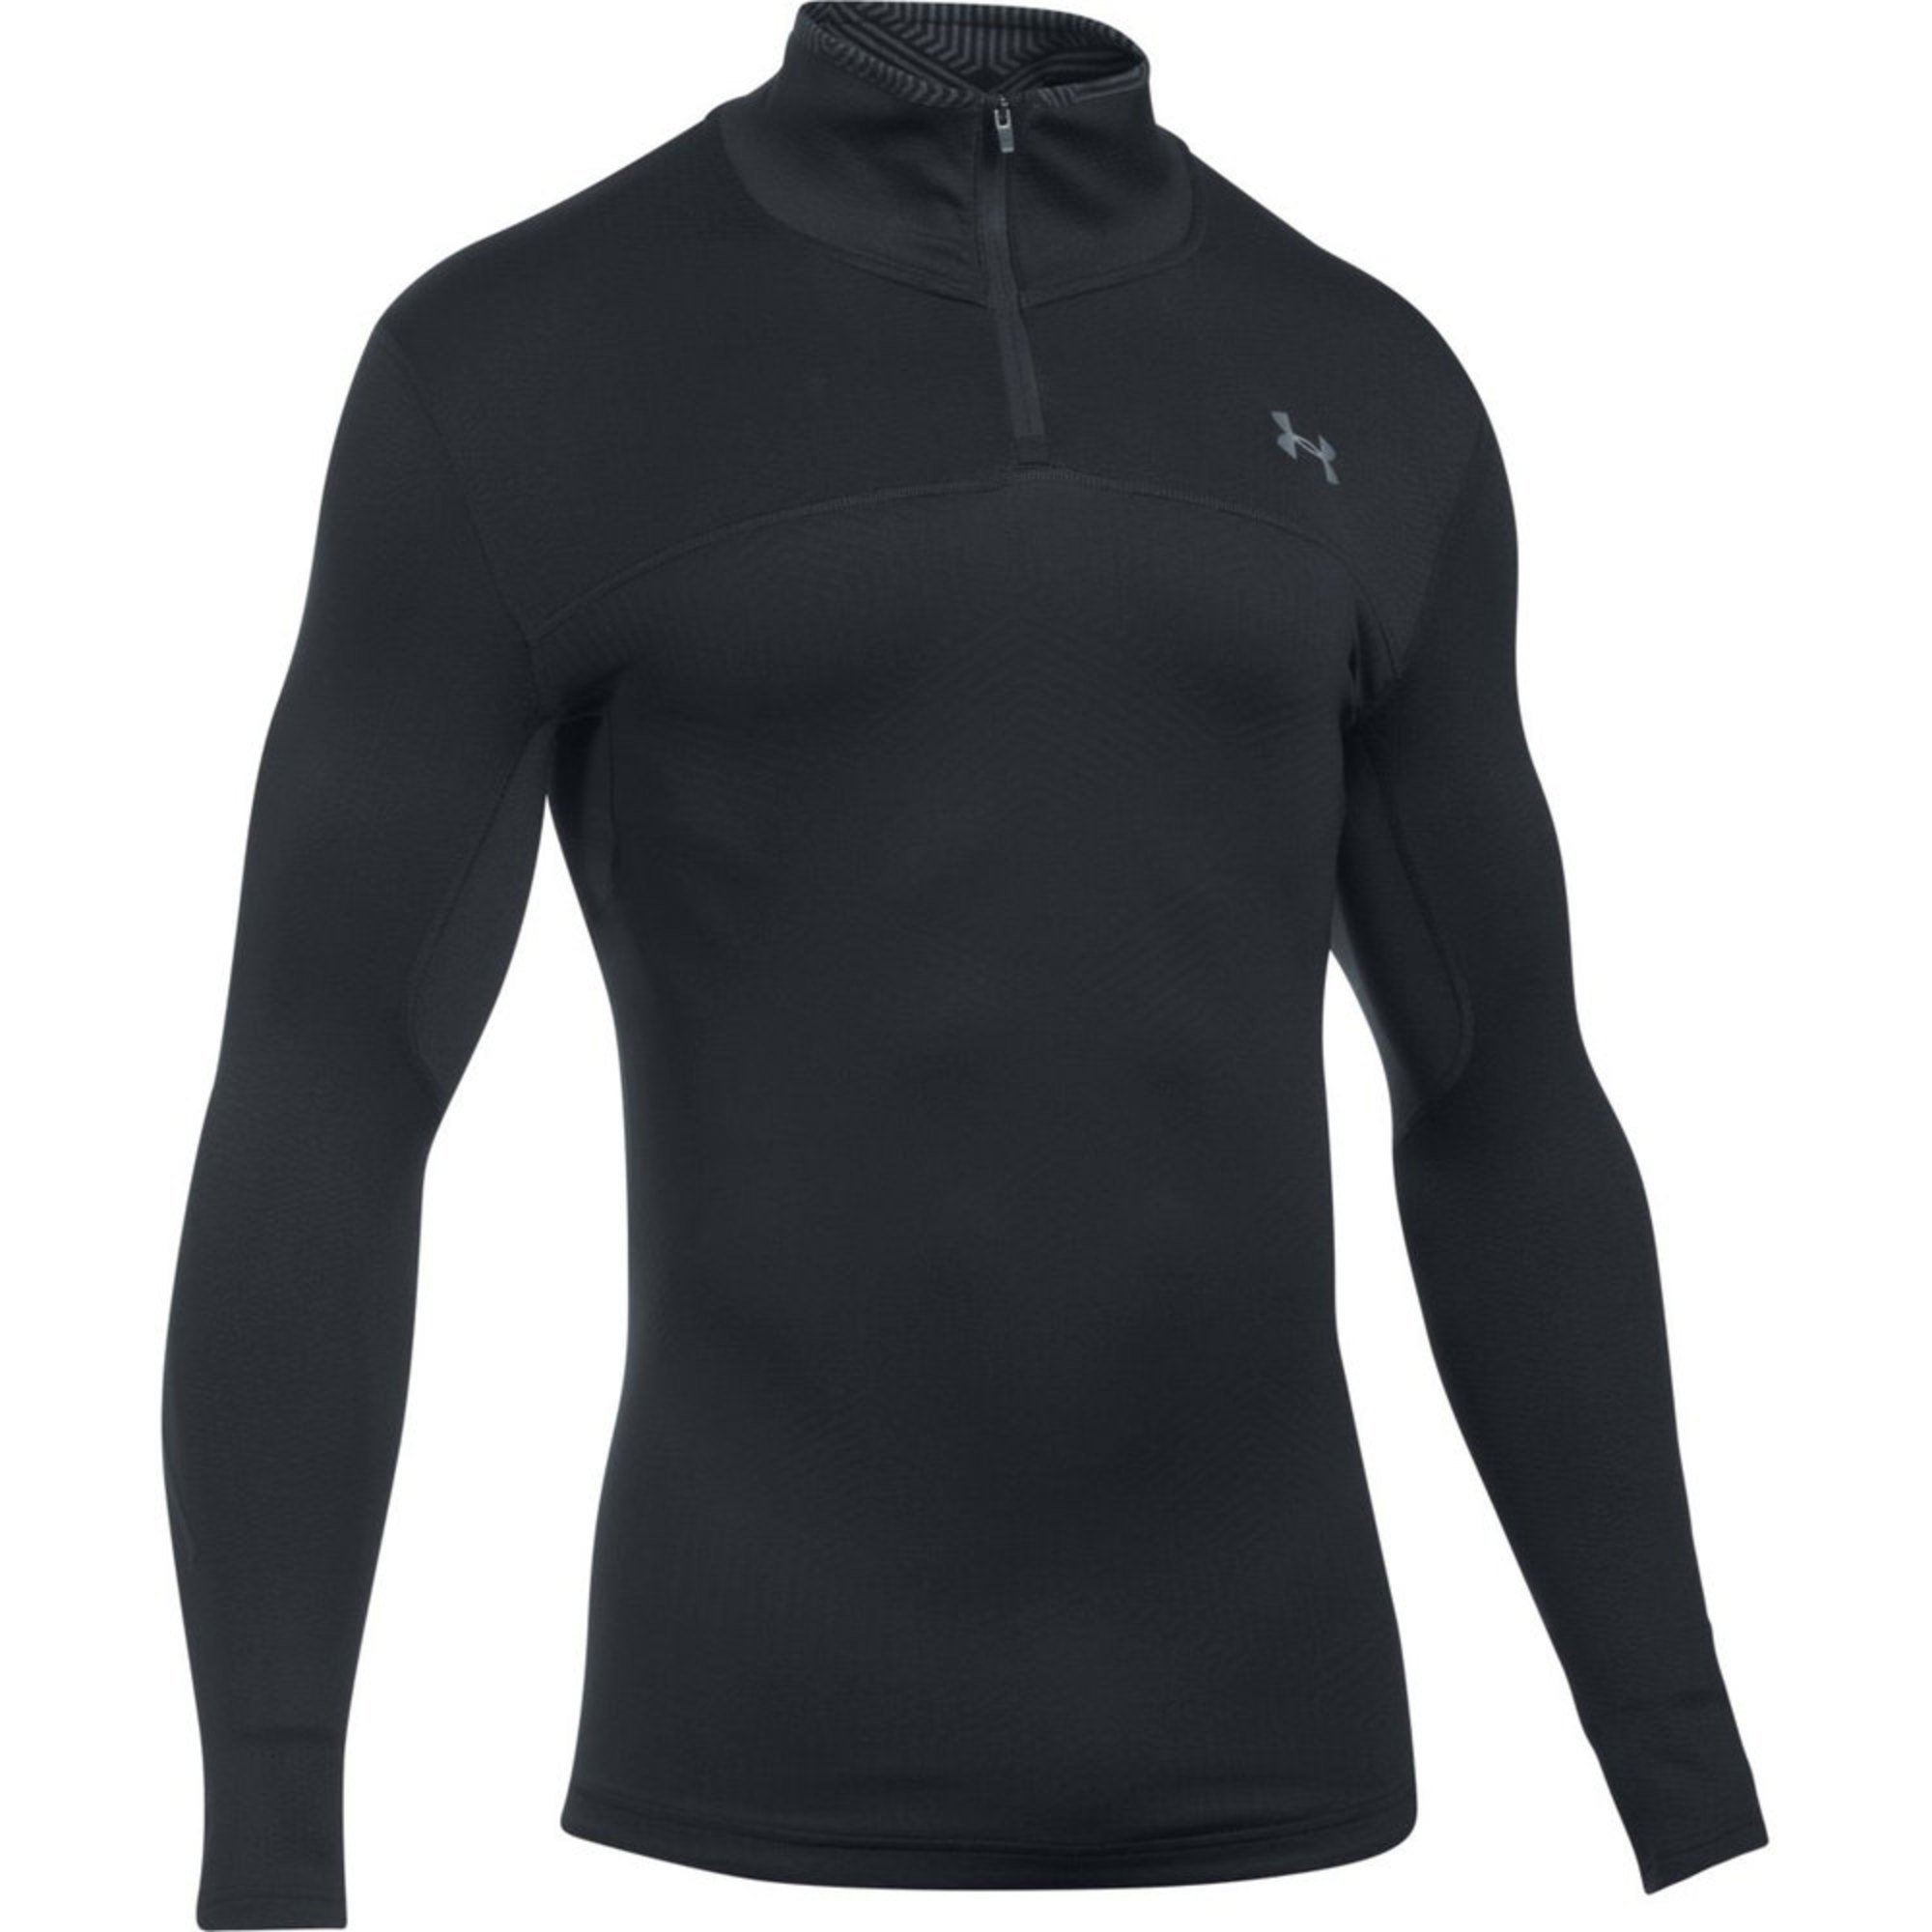 Under armour men 39 s cold gear infrared armour elements 1 4 for Under armour cold gear shirt mens